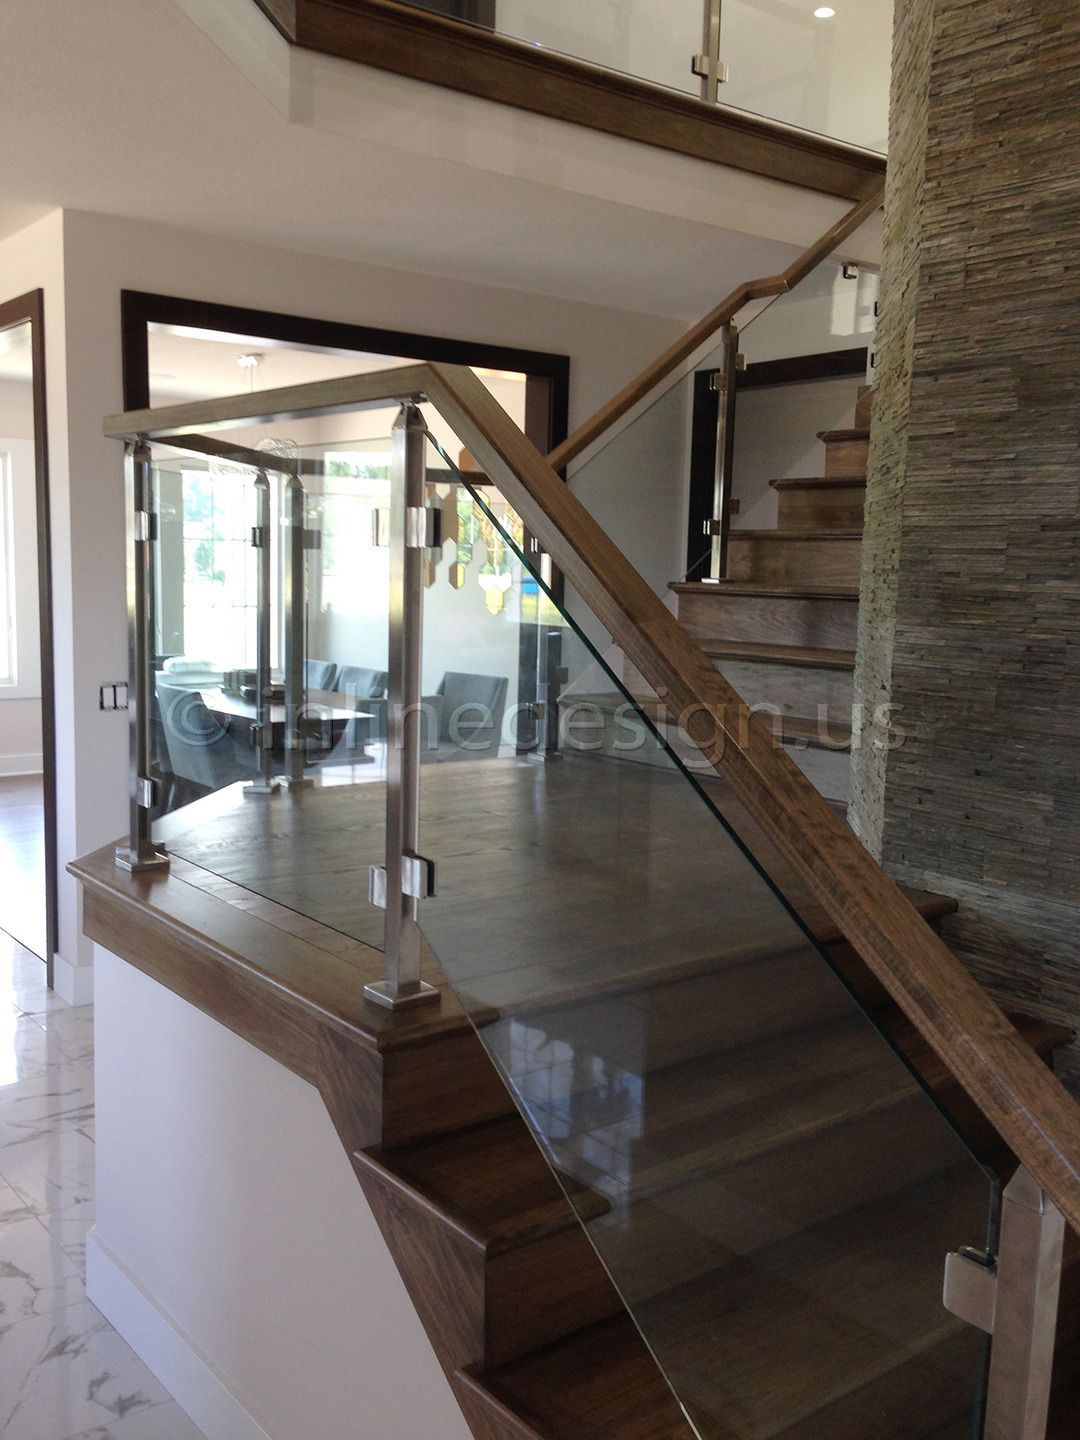 Glass Balusters For Railings | Single_stainless Steel Glass Railing Stairs